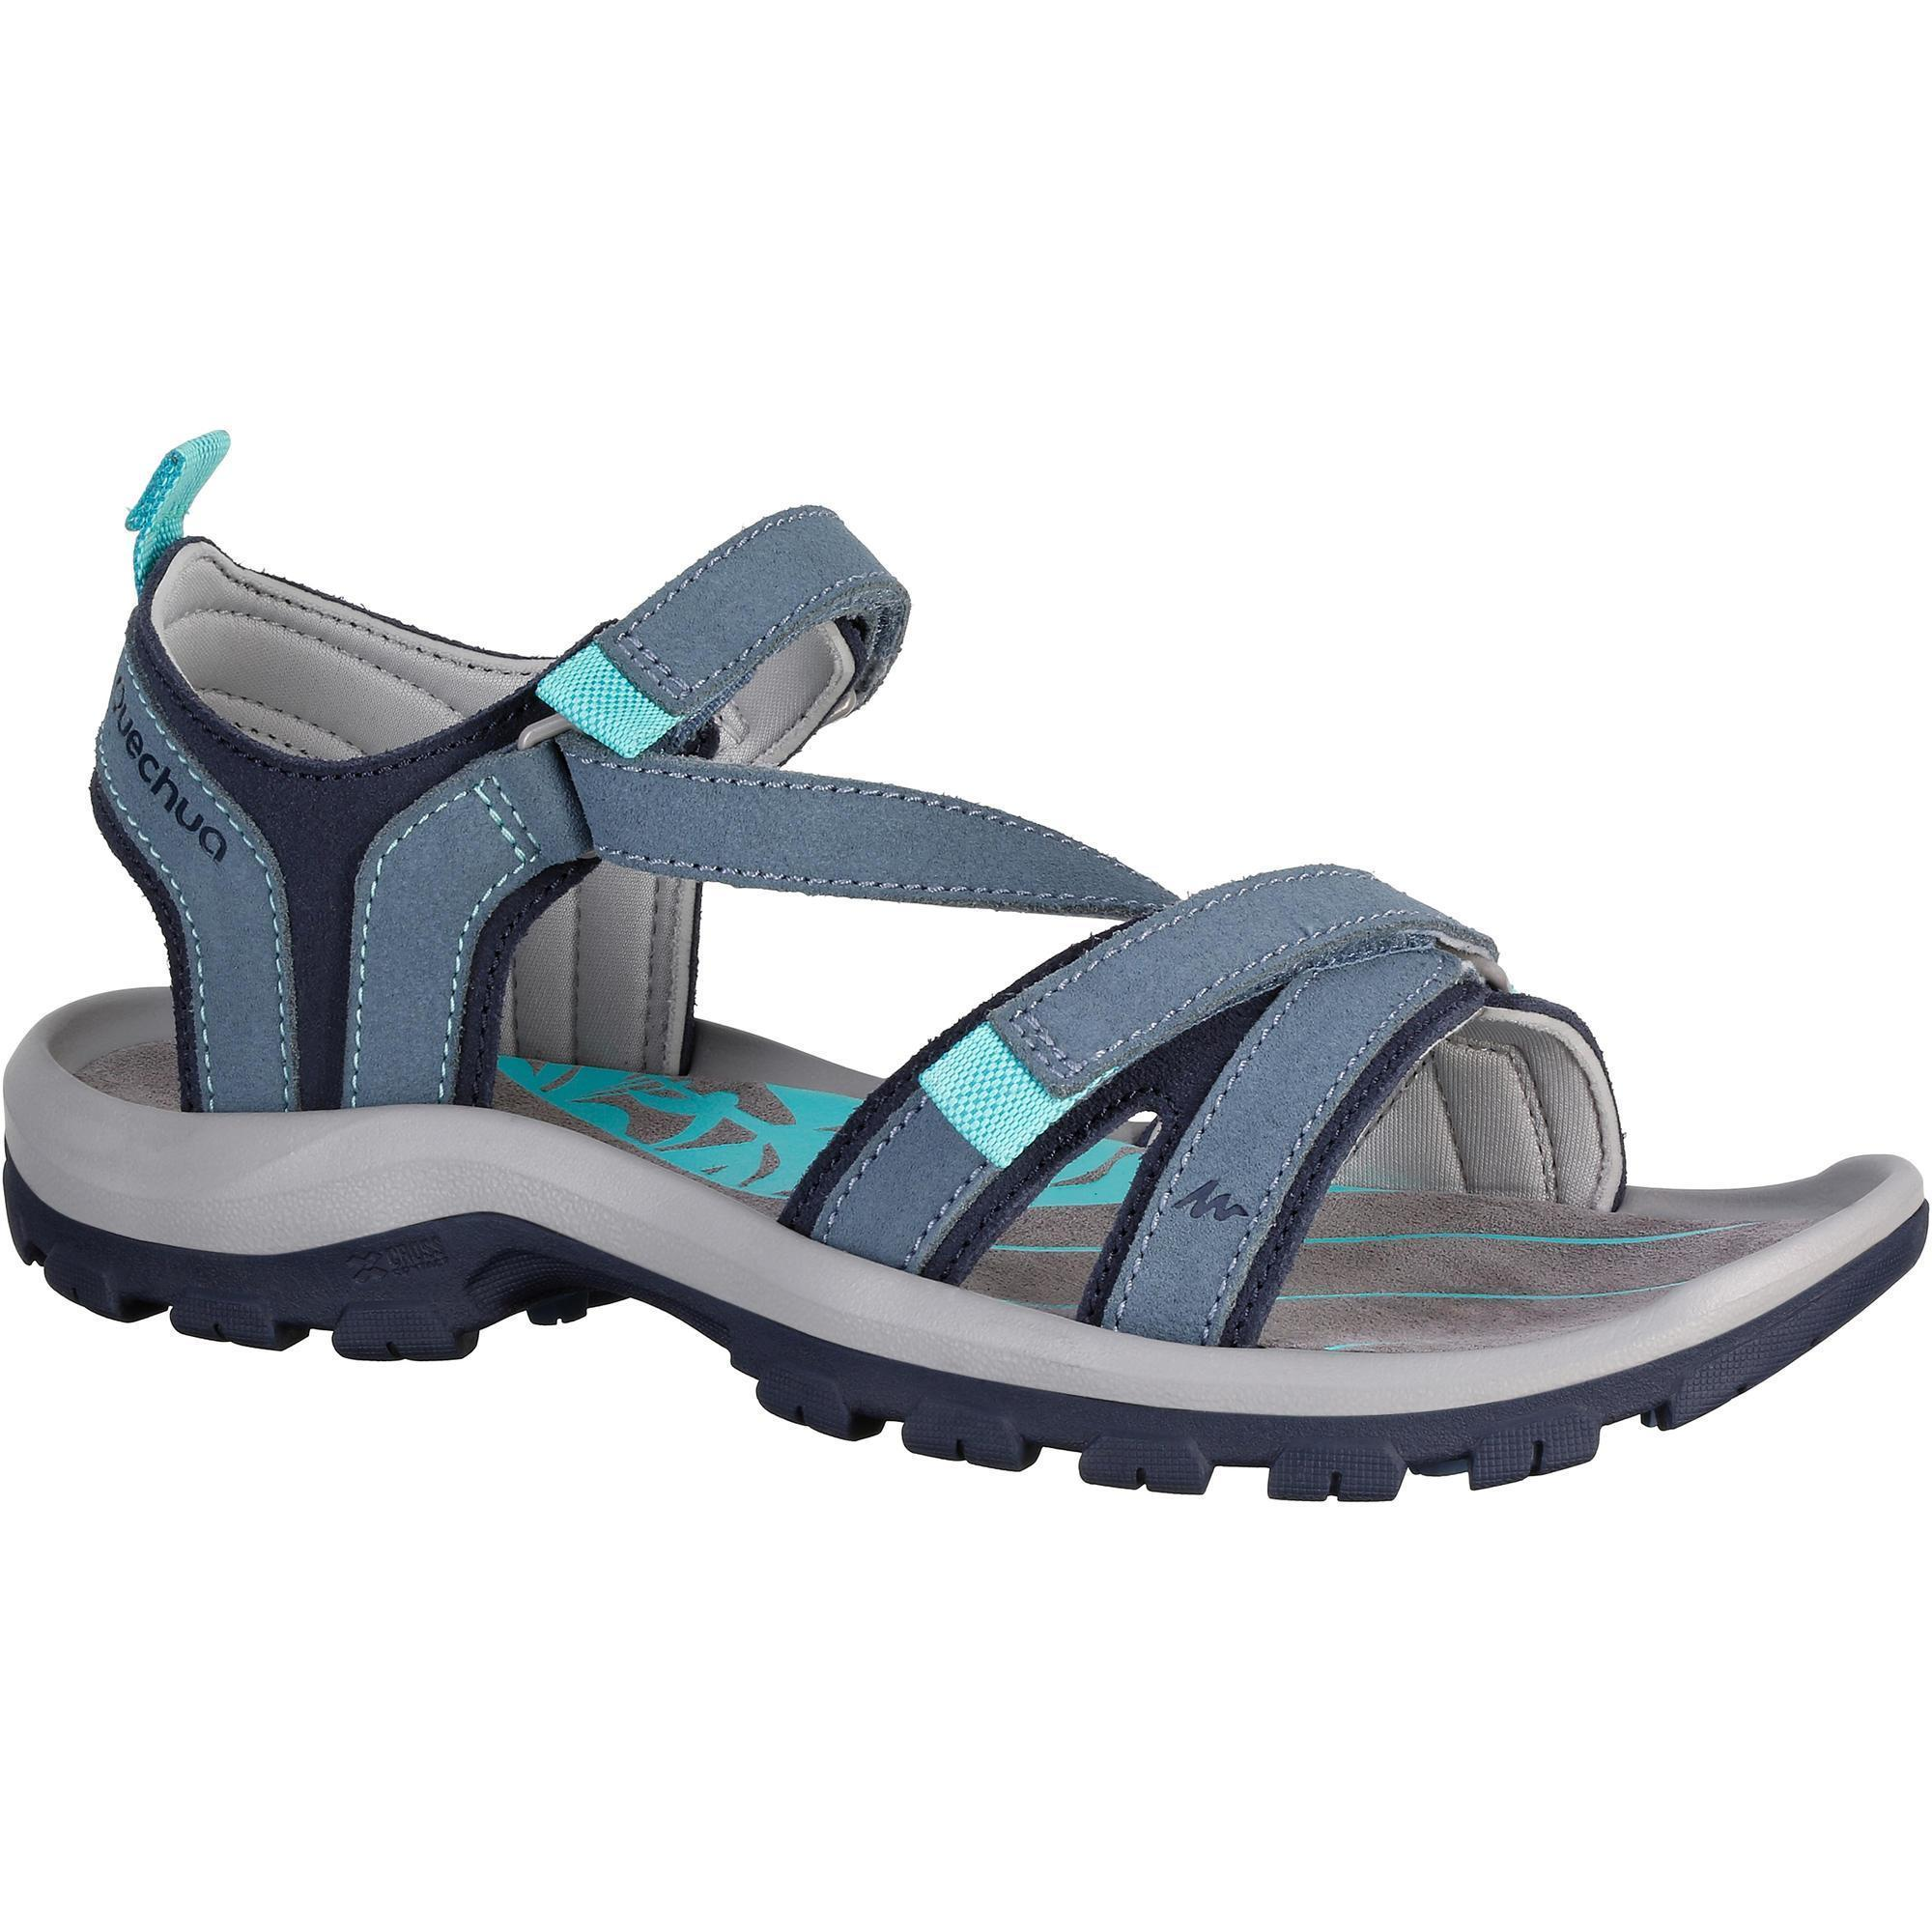 Women S Arpenaz 120 Hiking Sandals Sky Blue Quechua